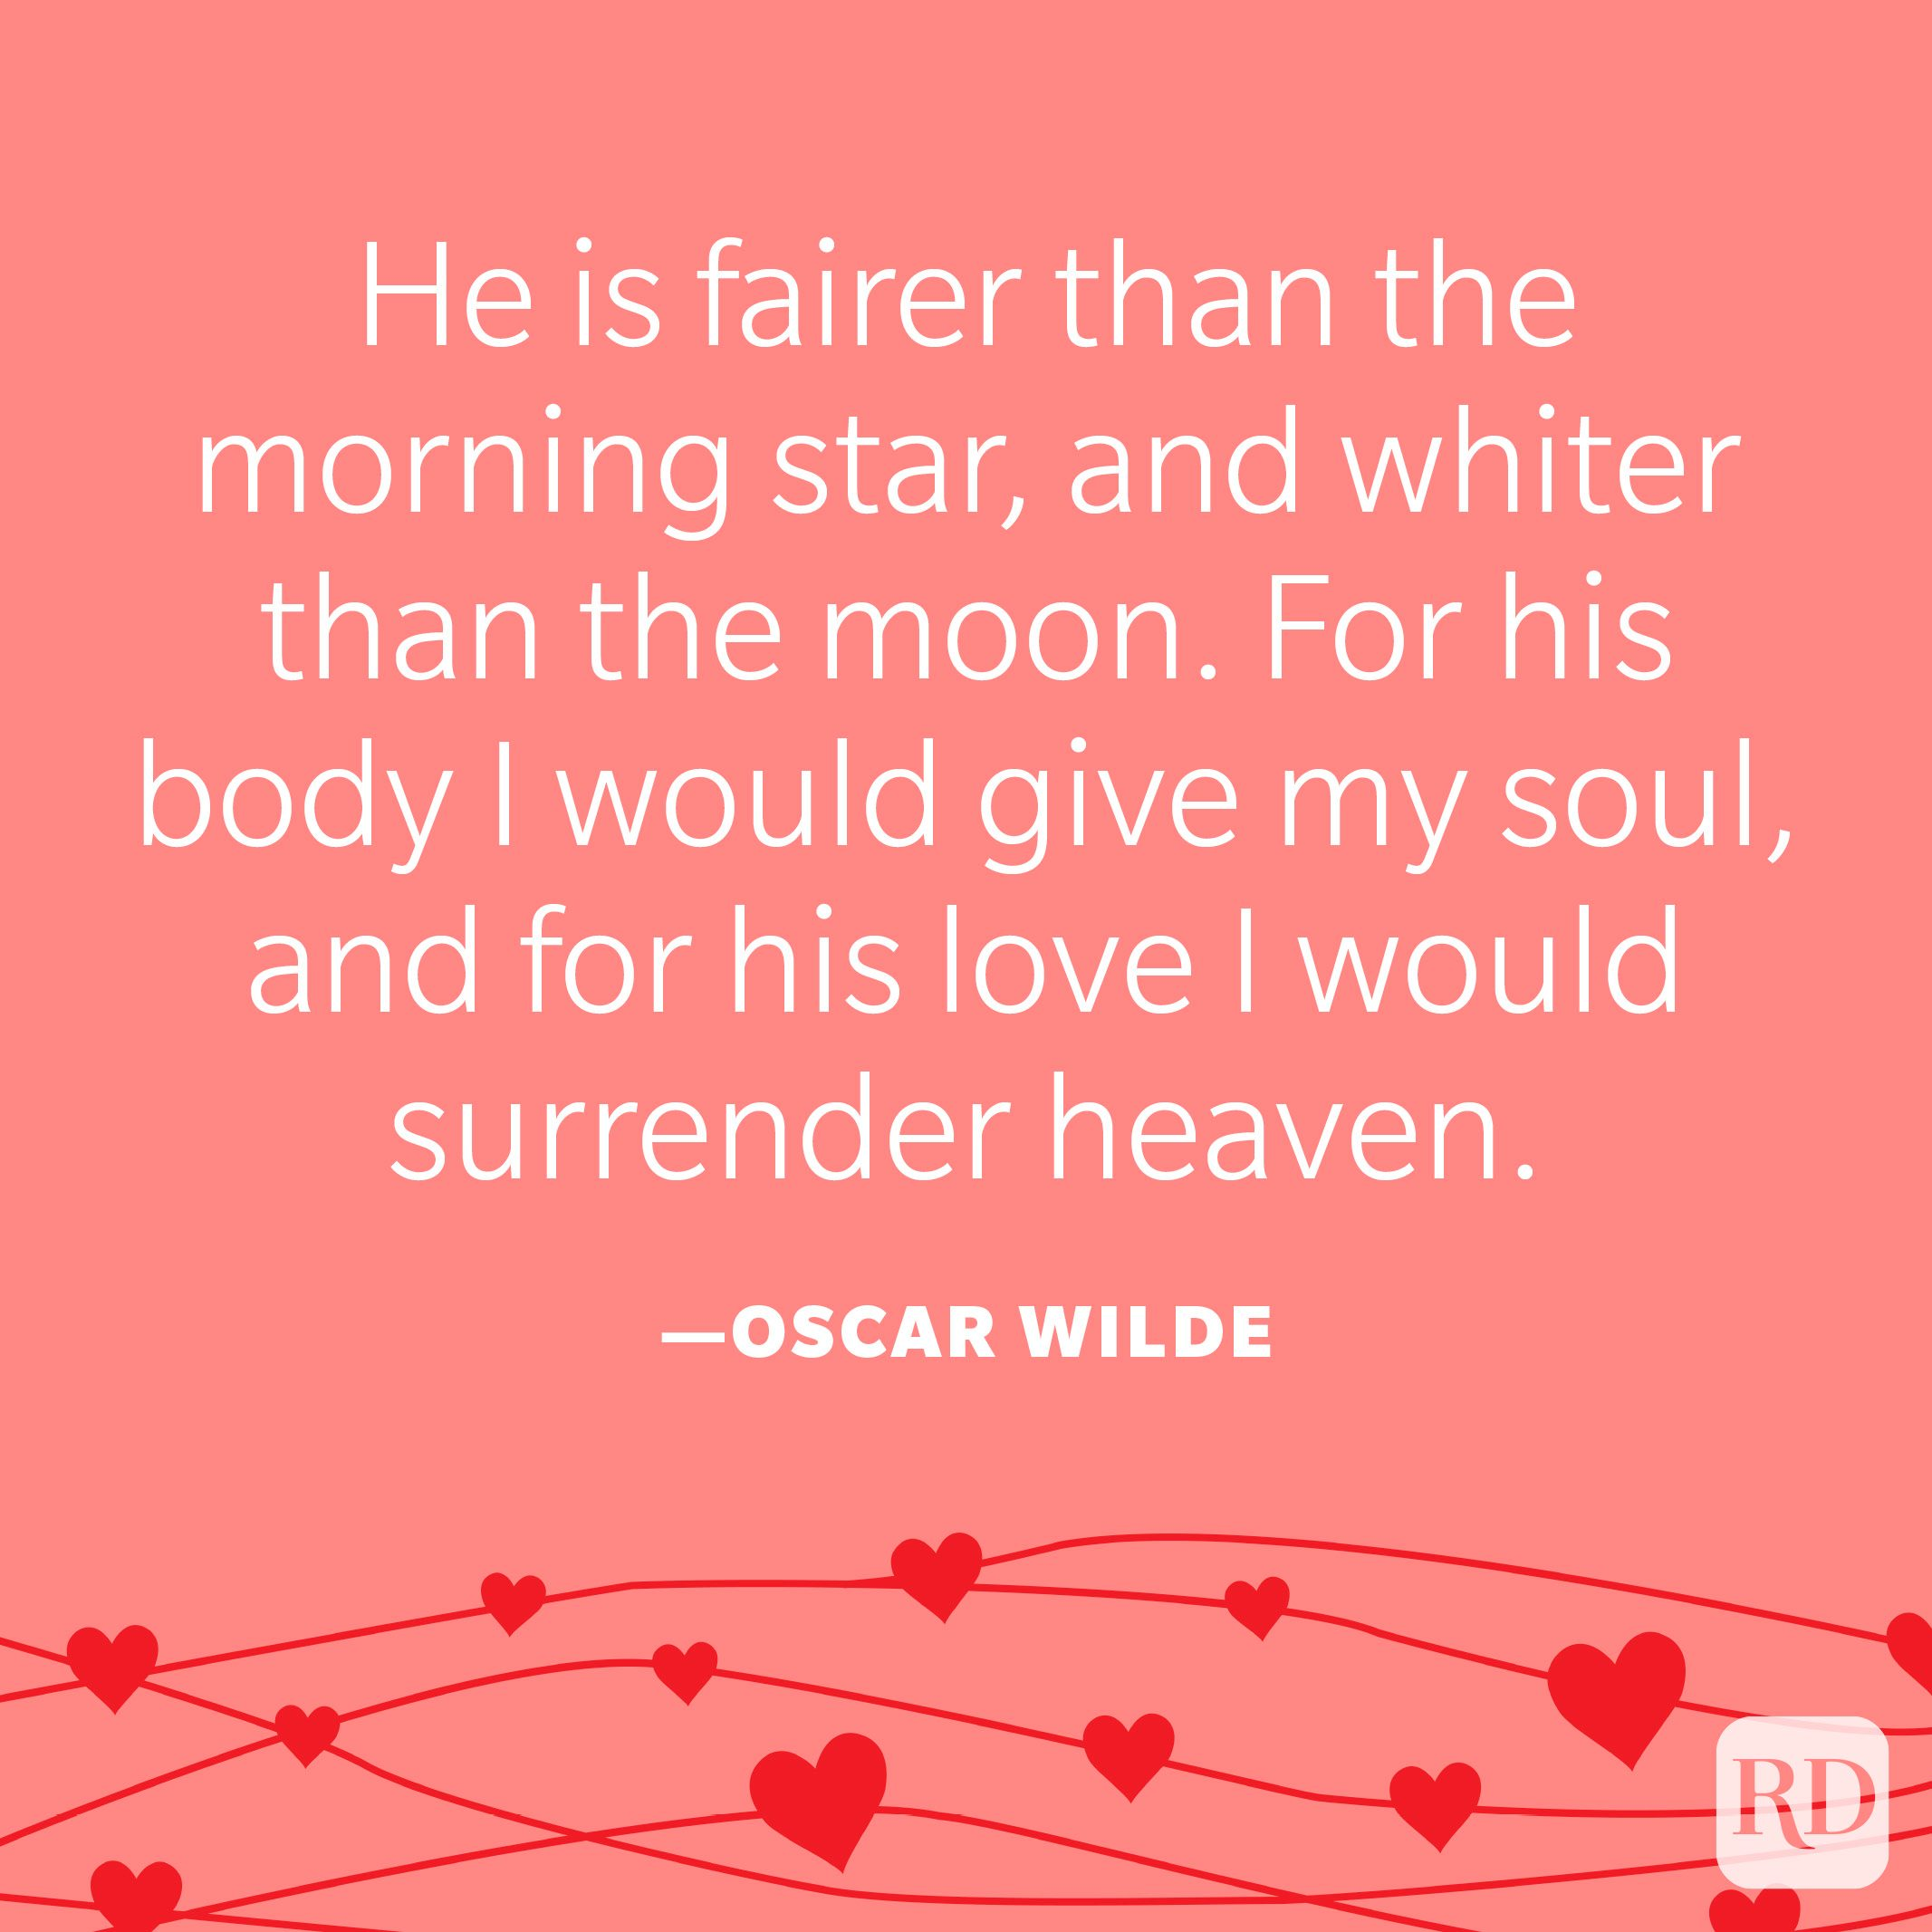 """""""He is fairer than the morning star, and whiter than the moon. For his body I would give my soul, and for his love I would surrender heaven."""" —Oscar Wilde"""